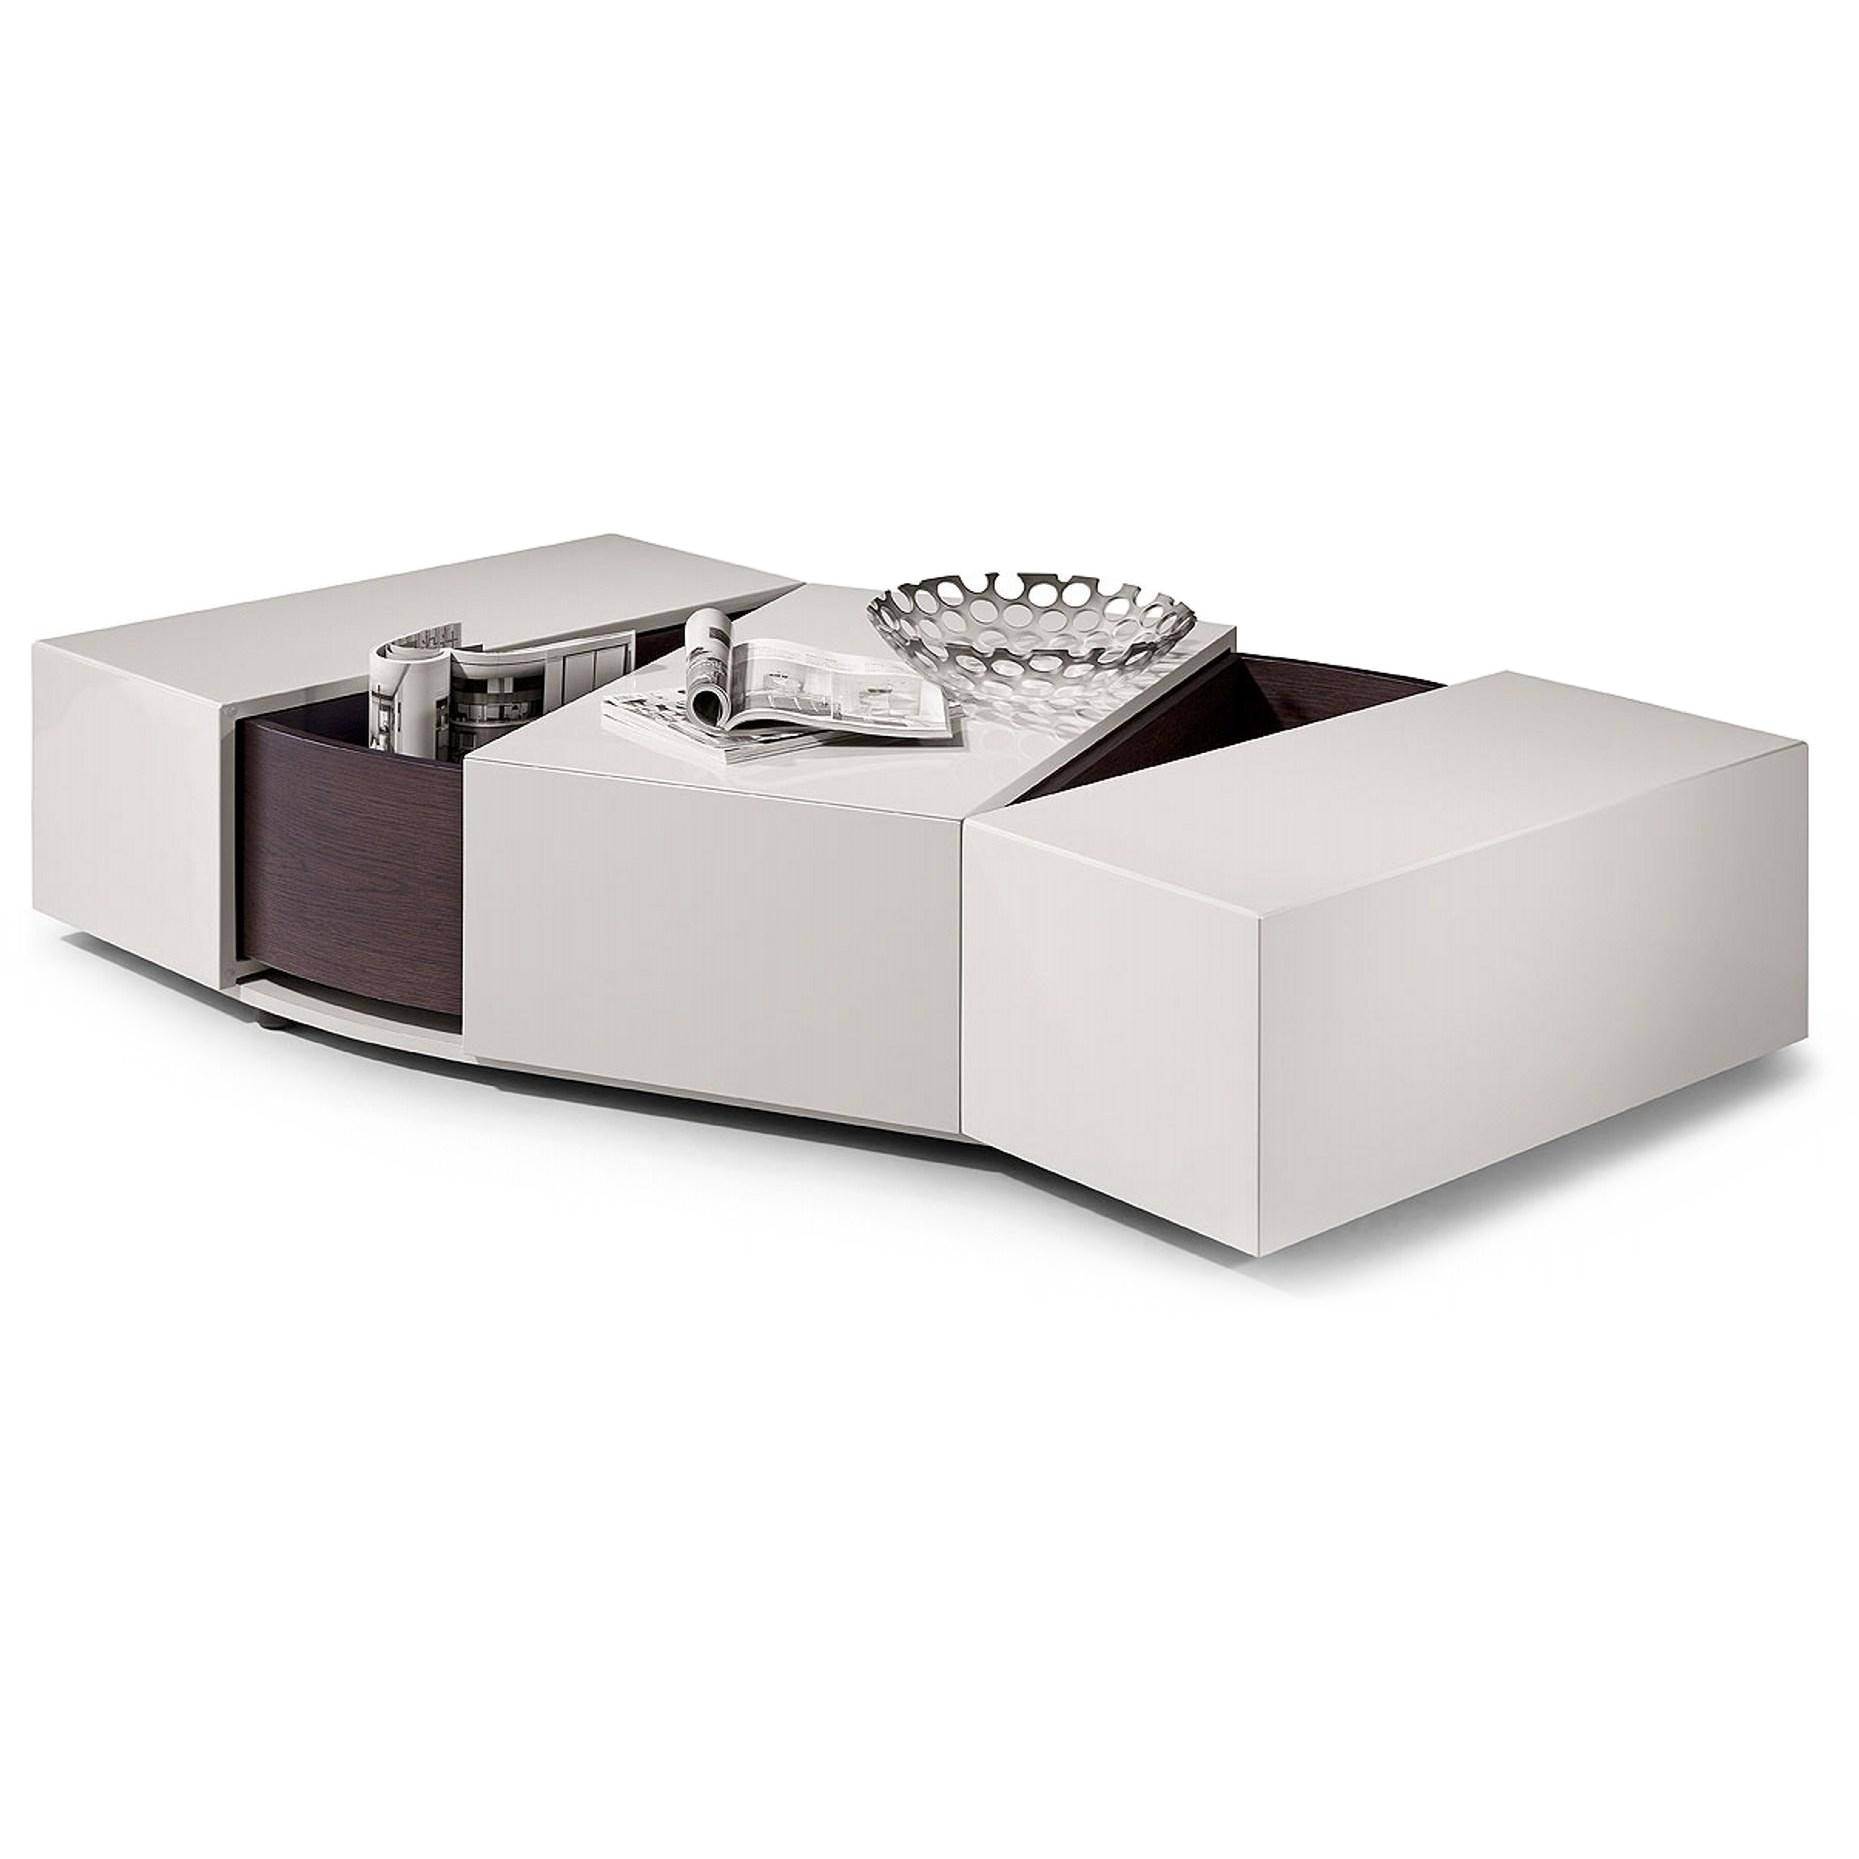 Furniture. Glamorous White Coffee Tables With Storage For Warm with White Coffee Tables With Storage (Image 16 of 30)